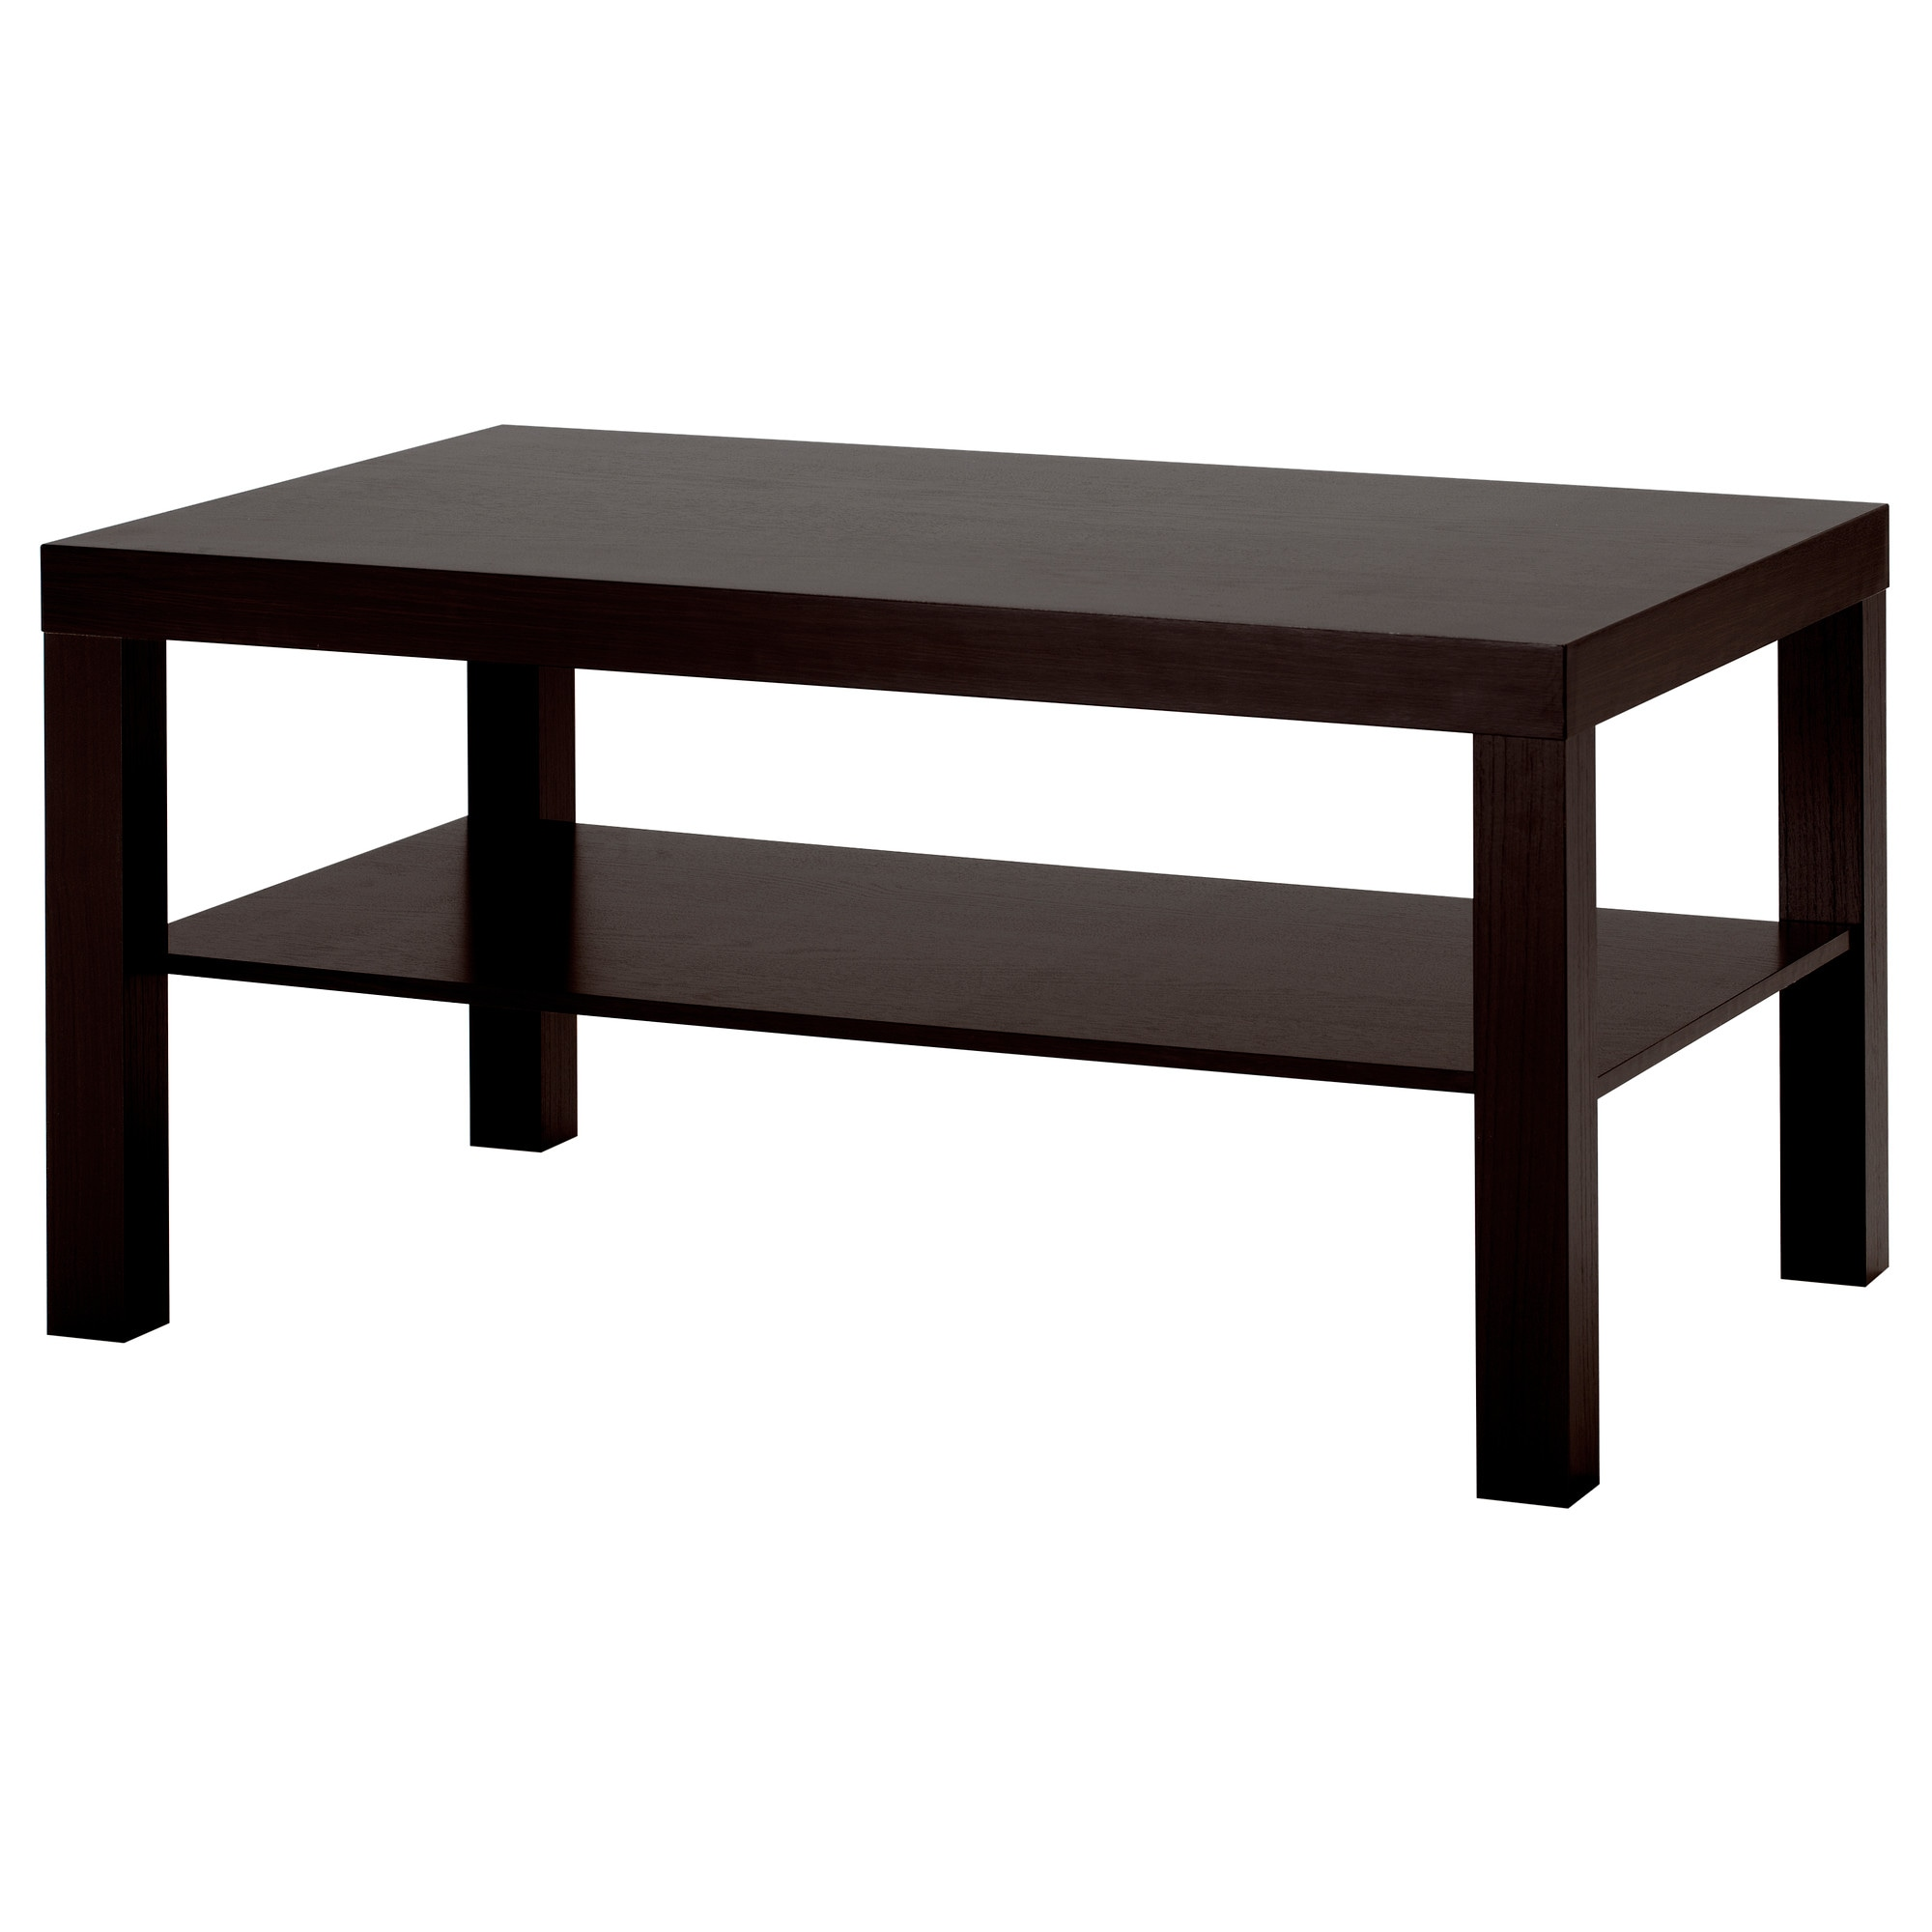 "LACK Coffee table white 35x22x18"" IKEA"